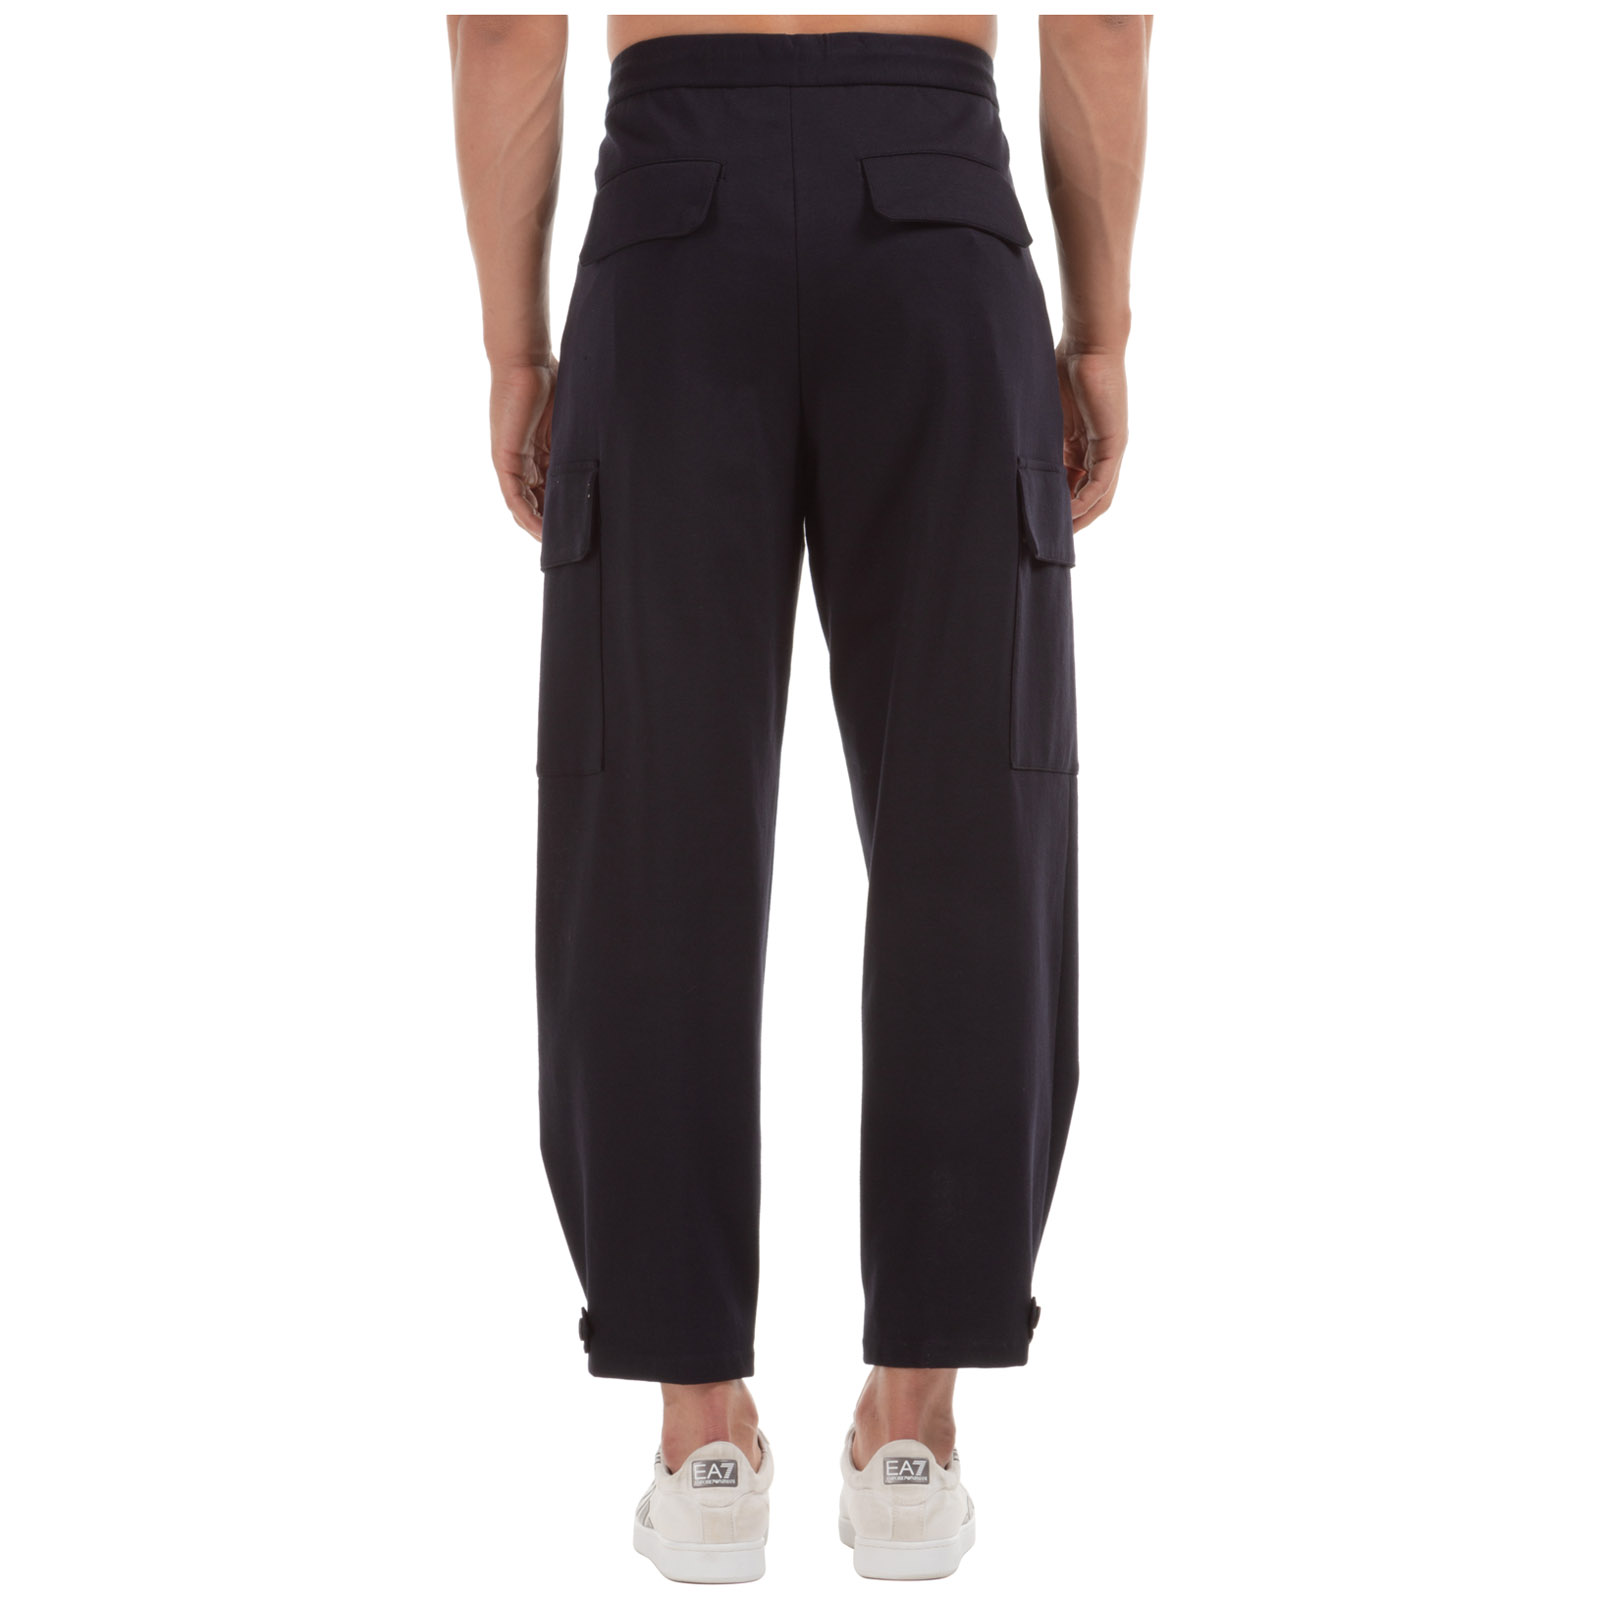 Men's trousers pants